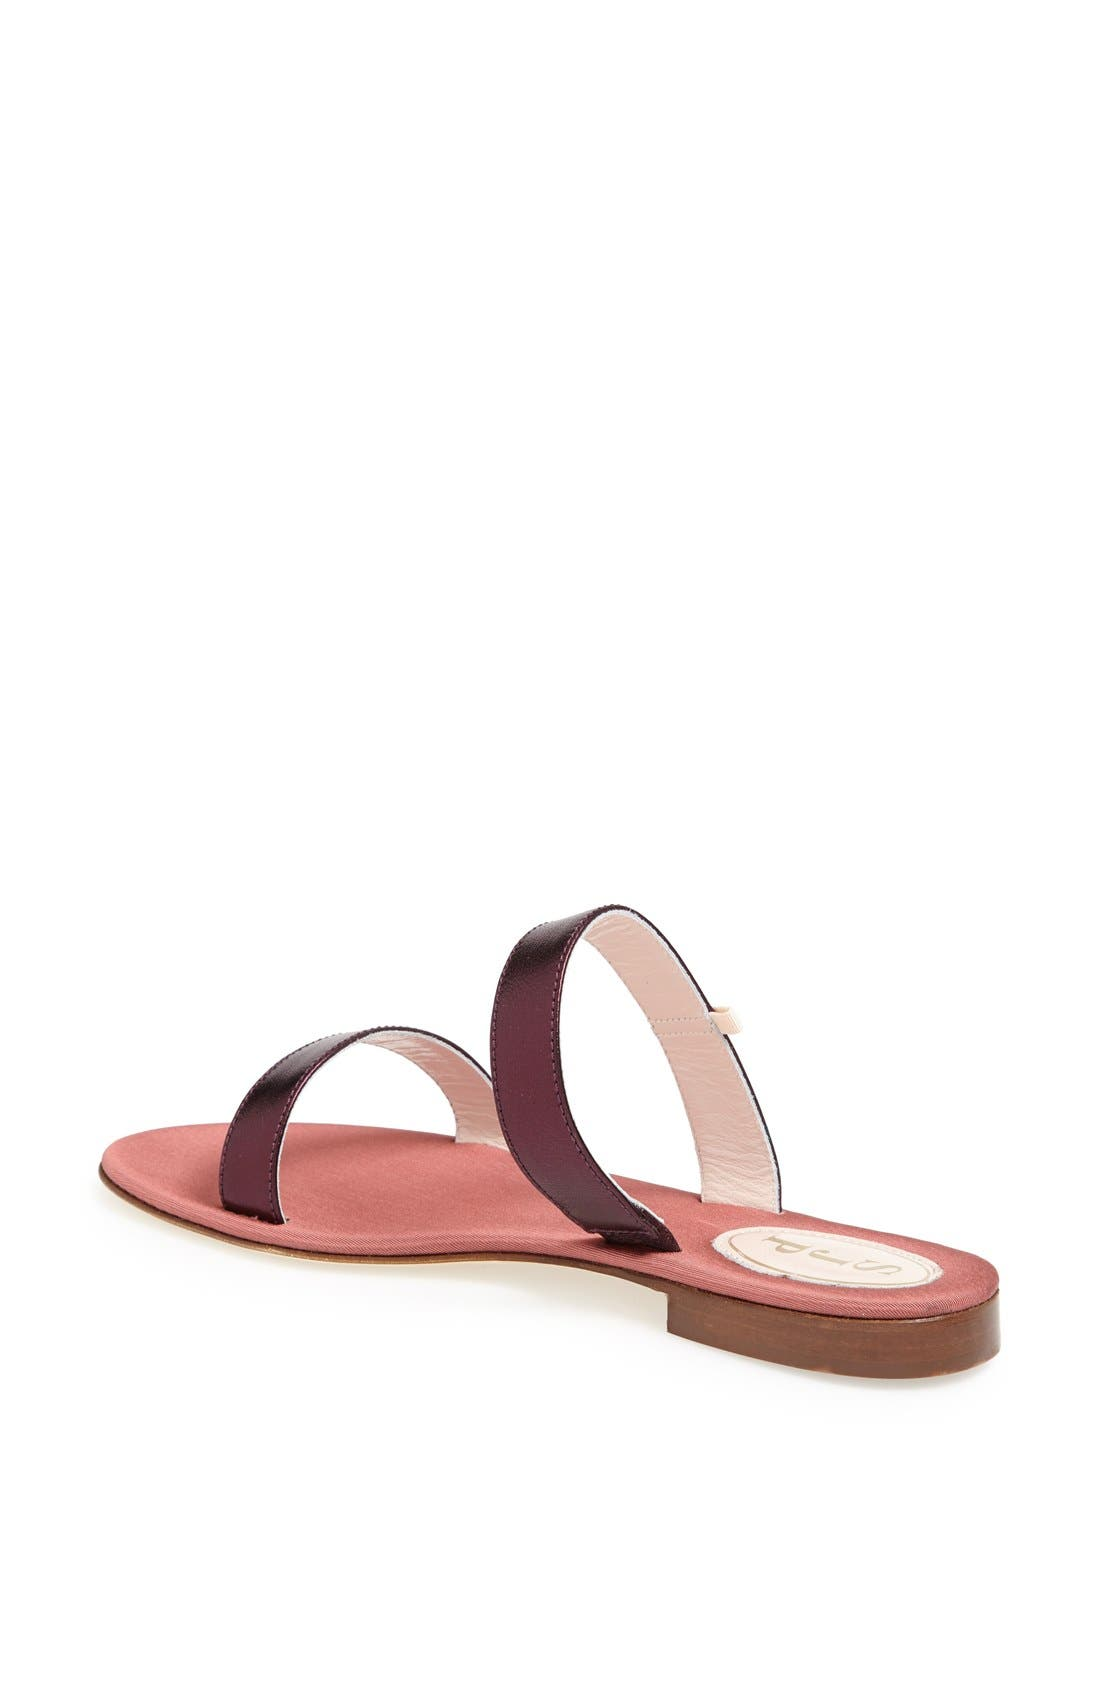 Alternate Image 3  - SJP 'Wallace' Sandal (Nordstrom Exclusive)